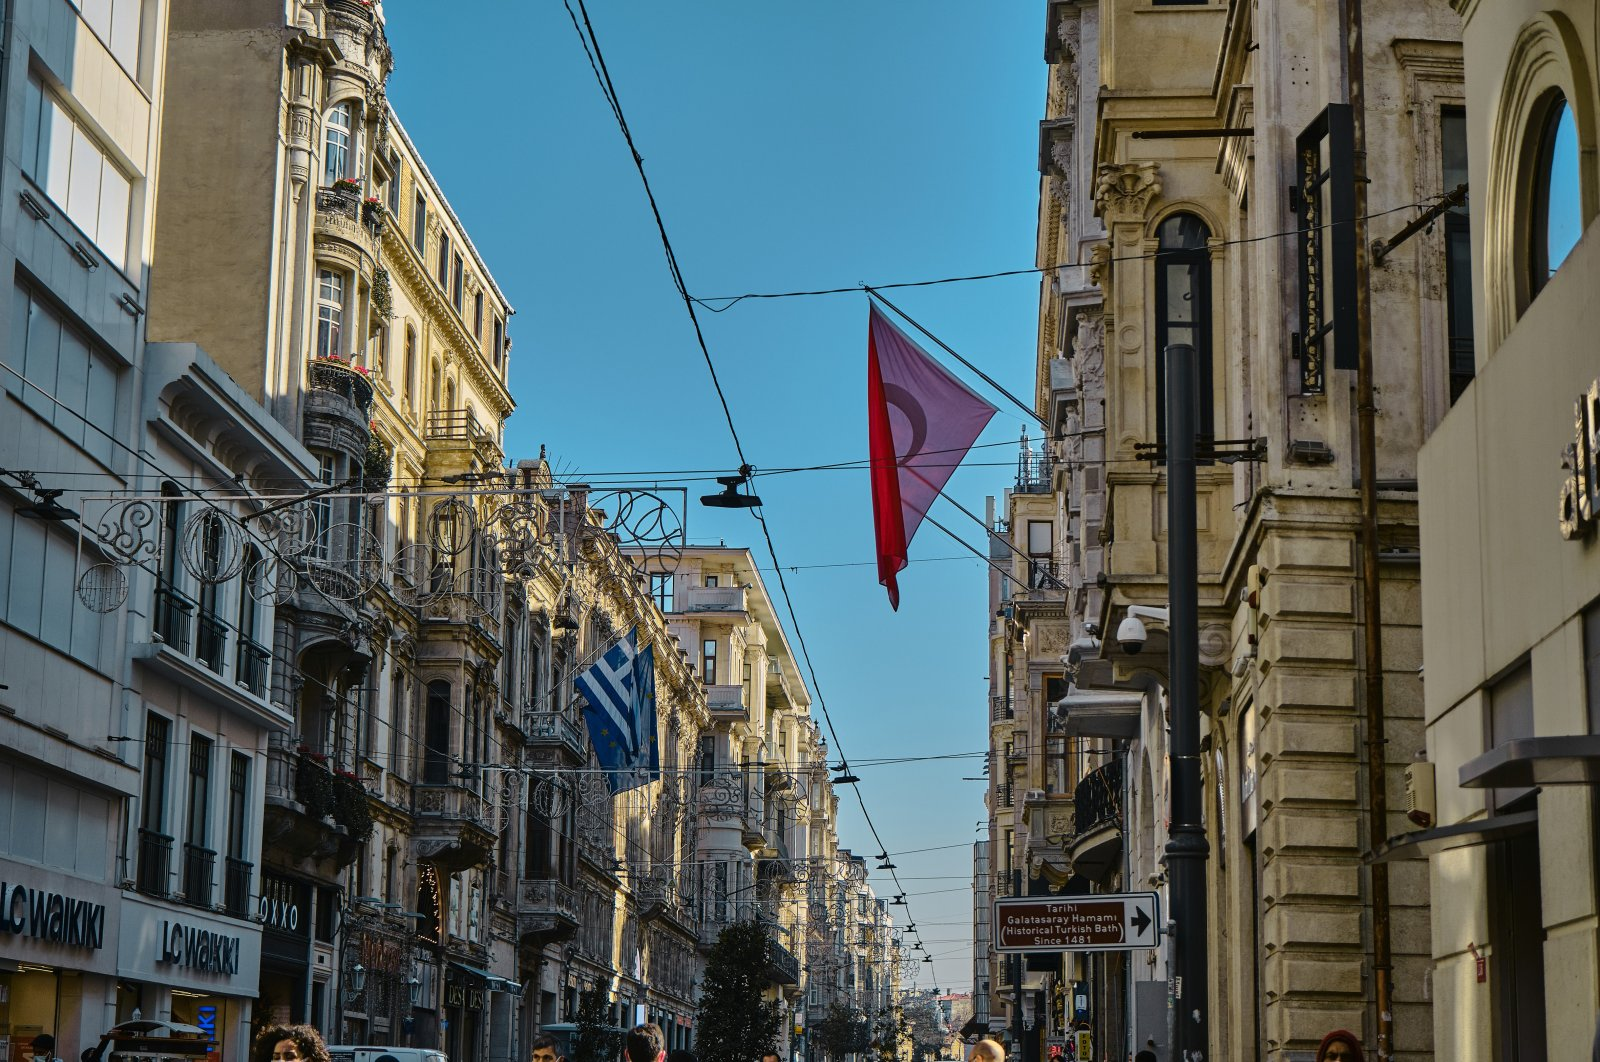 Turkish and Greek flags hang from the Greek consulate general on Istiklal Avenue, Beyoğlu, Istanbul, Turkey, March 4, 2021. (Photo by Shutterstock)